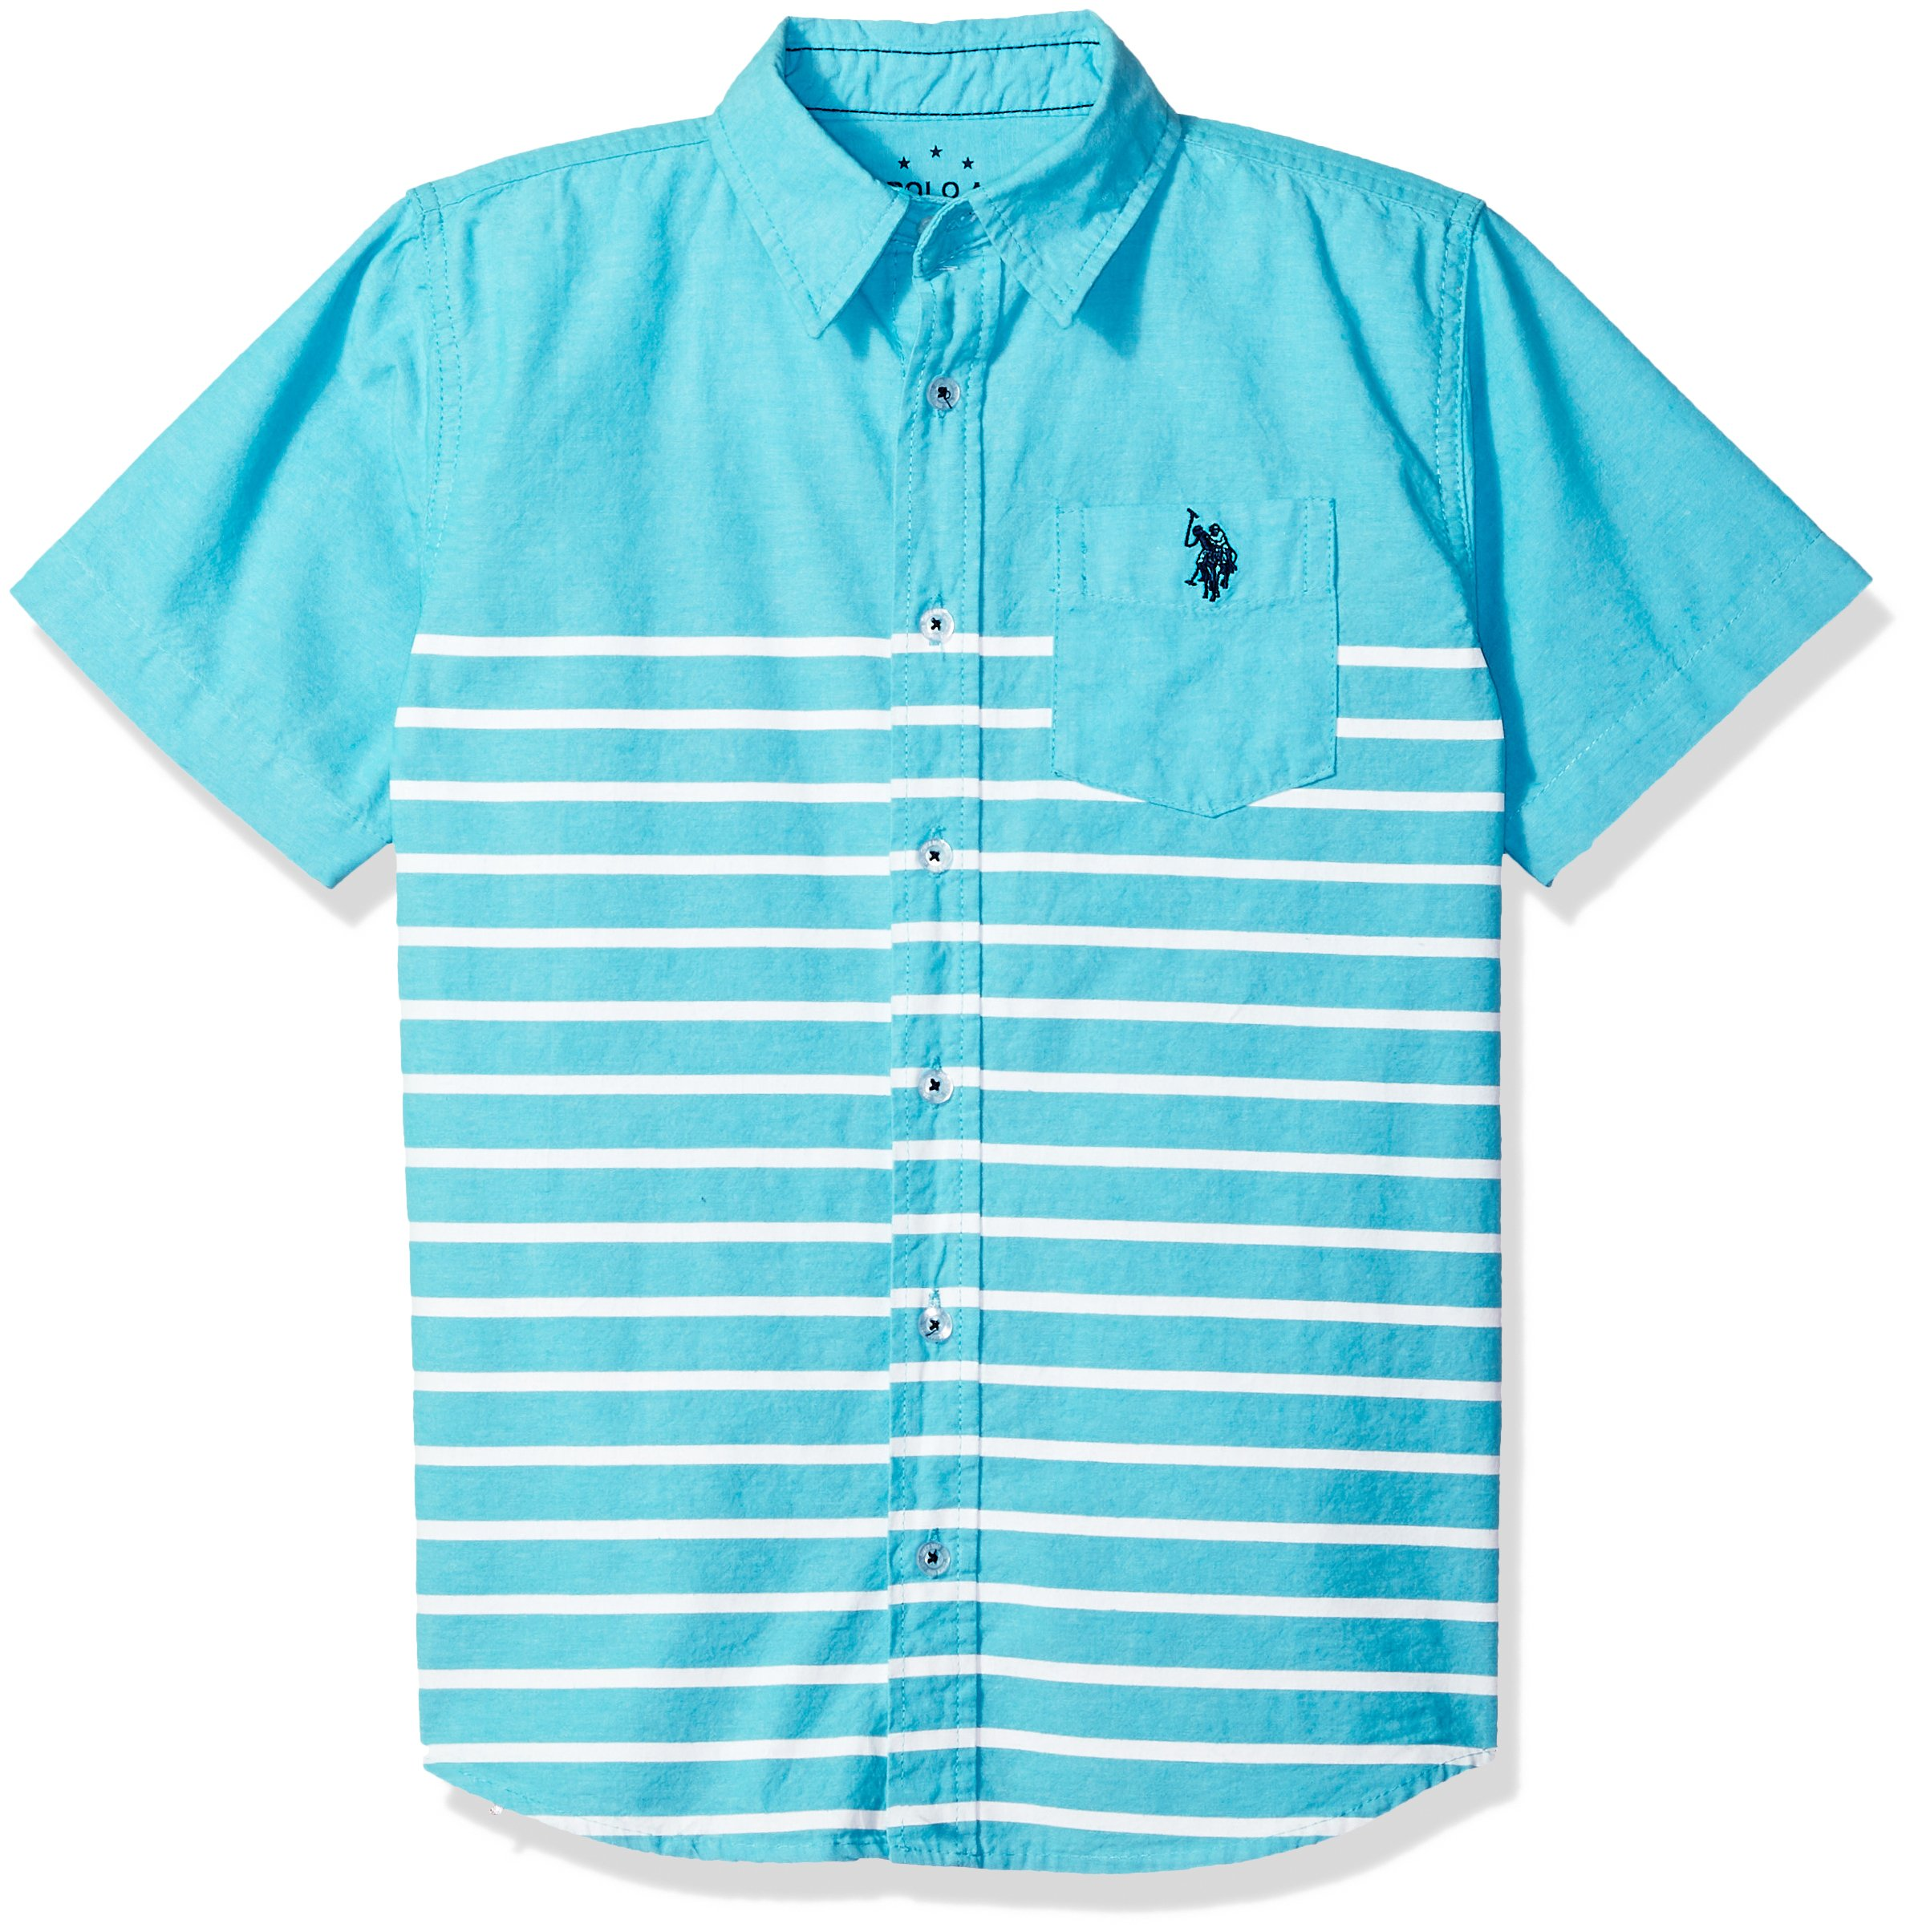 U.S. Polo Assn. Boys' Short Sleeve Striped Sport Shirt